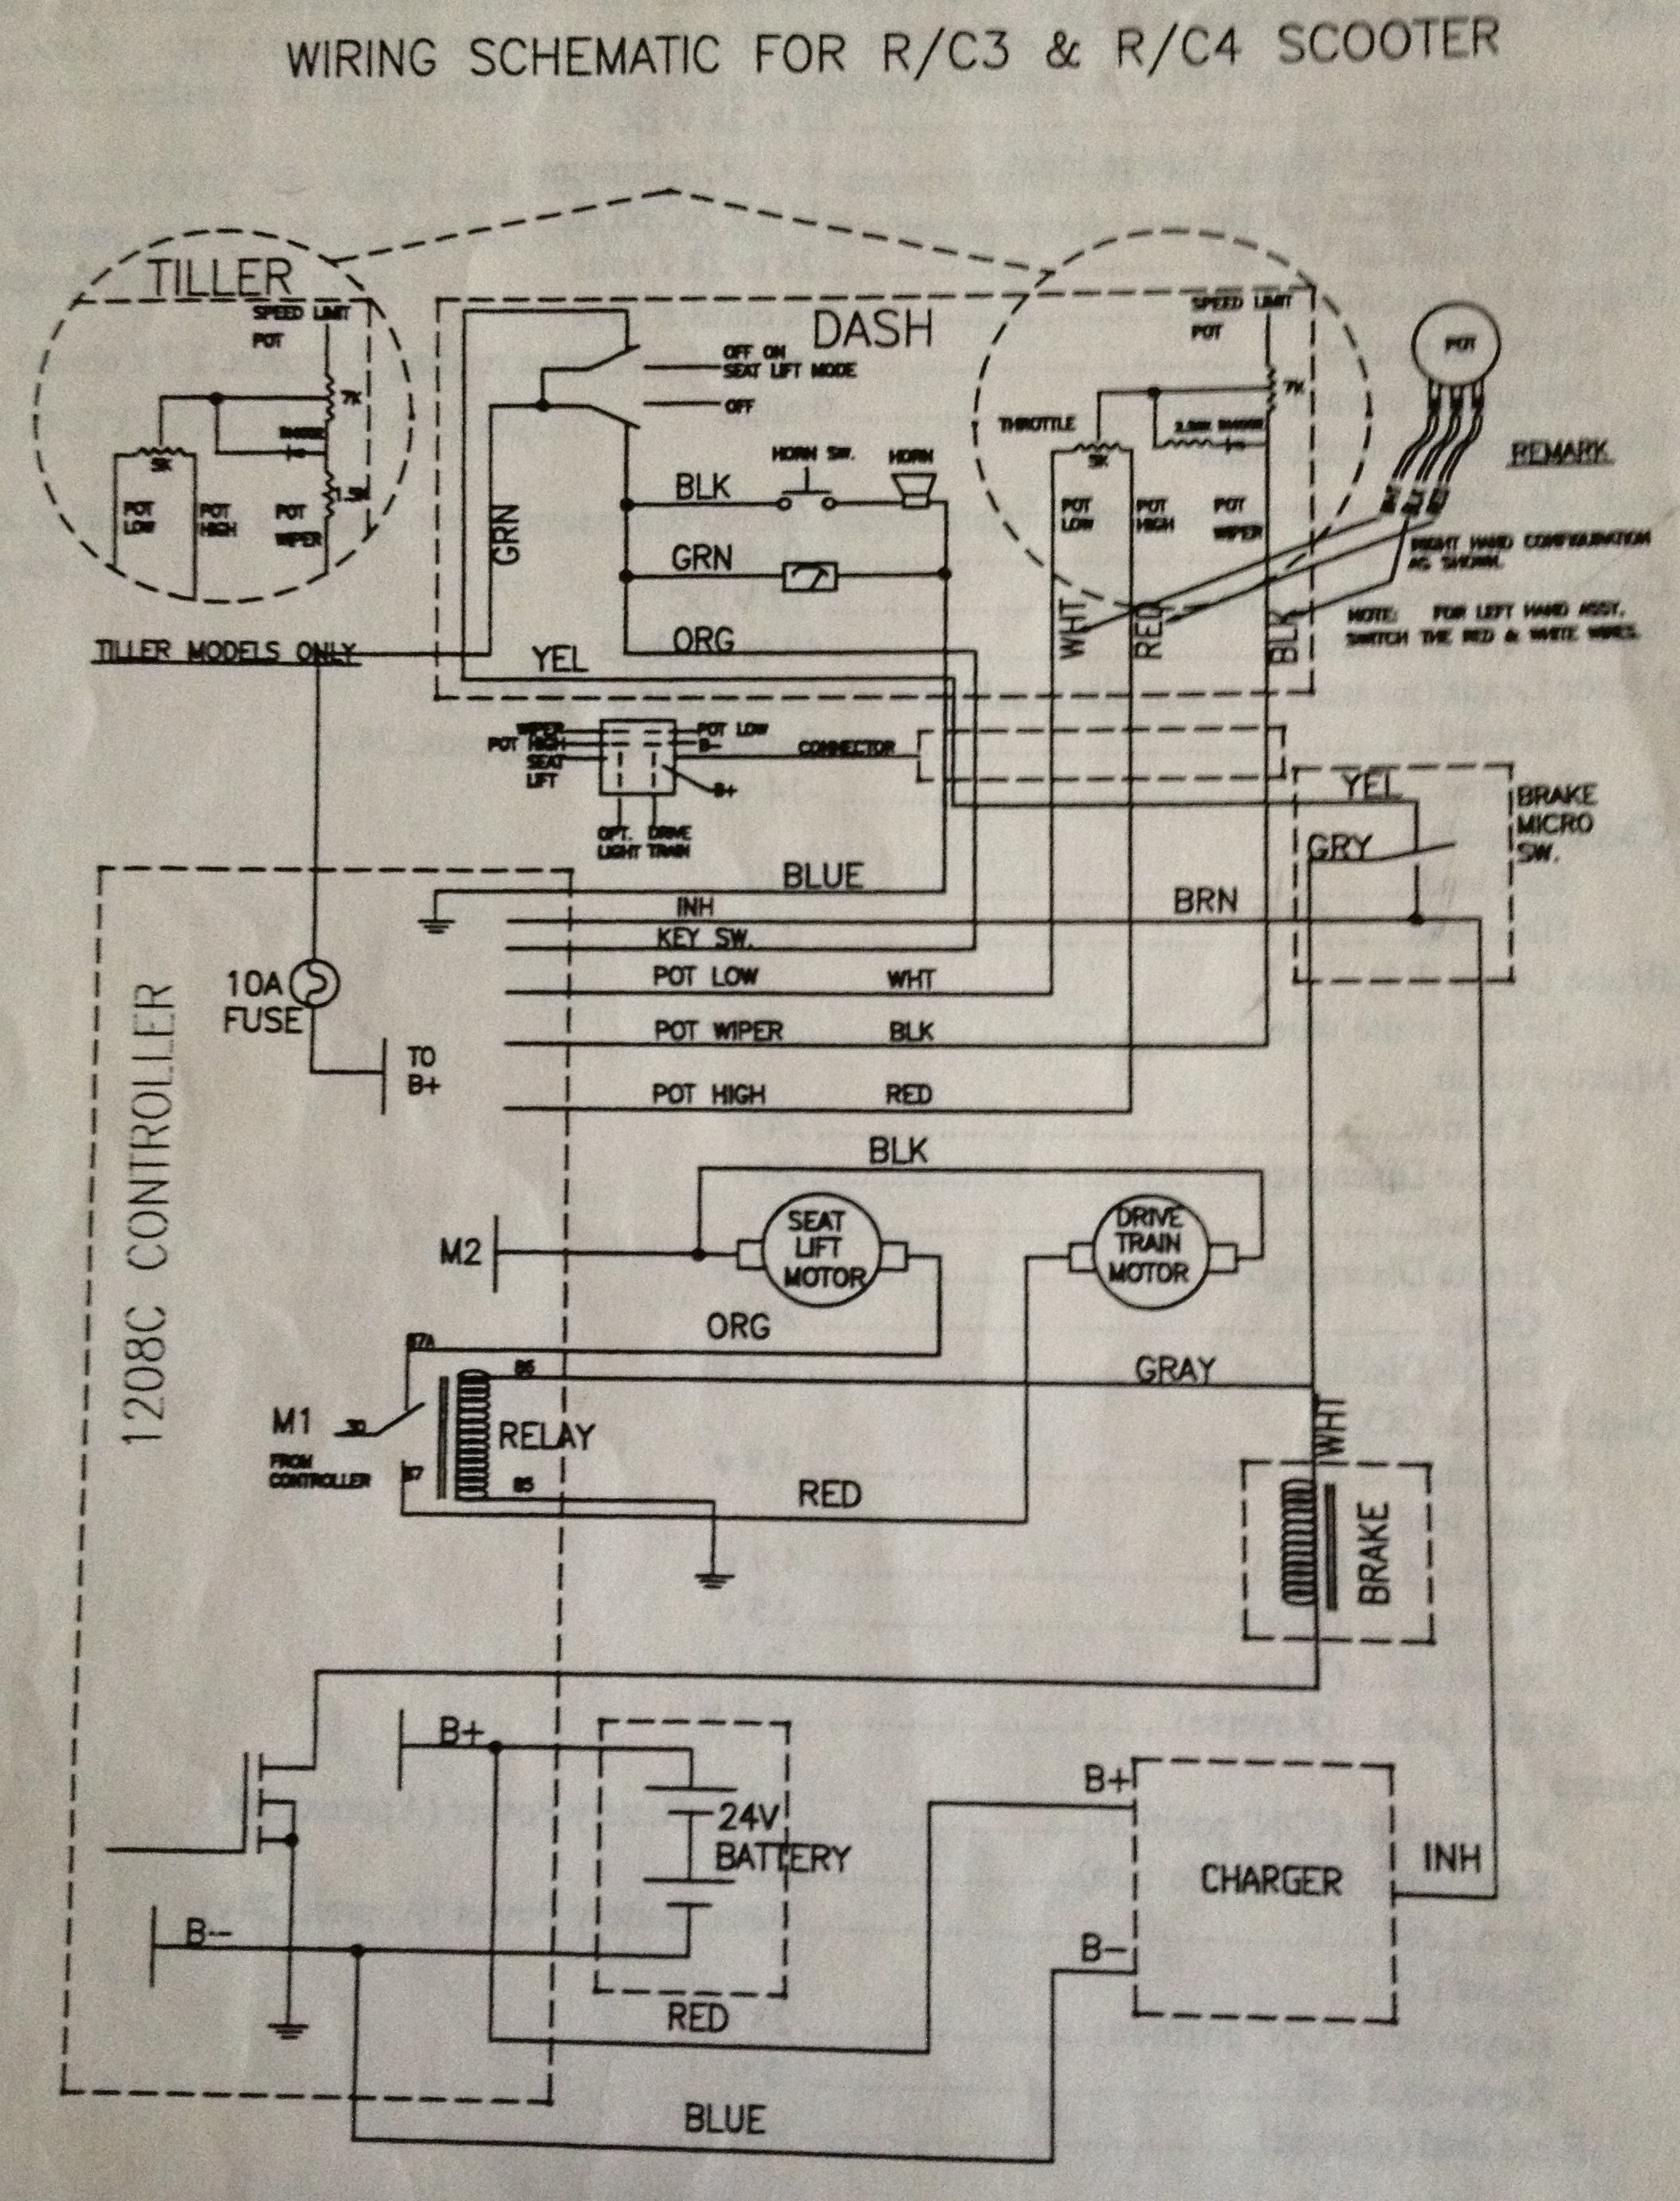 amigo scooter wiring diagram mobility    scooter    doctor  mobility    scooter    doctor